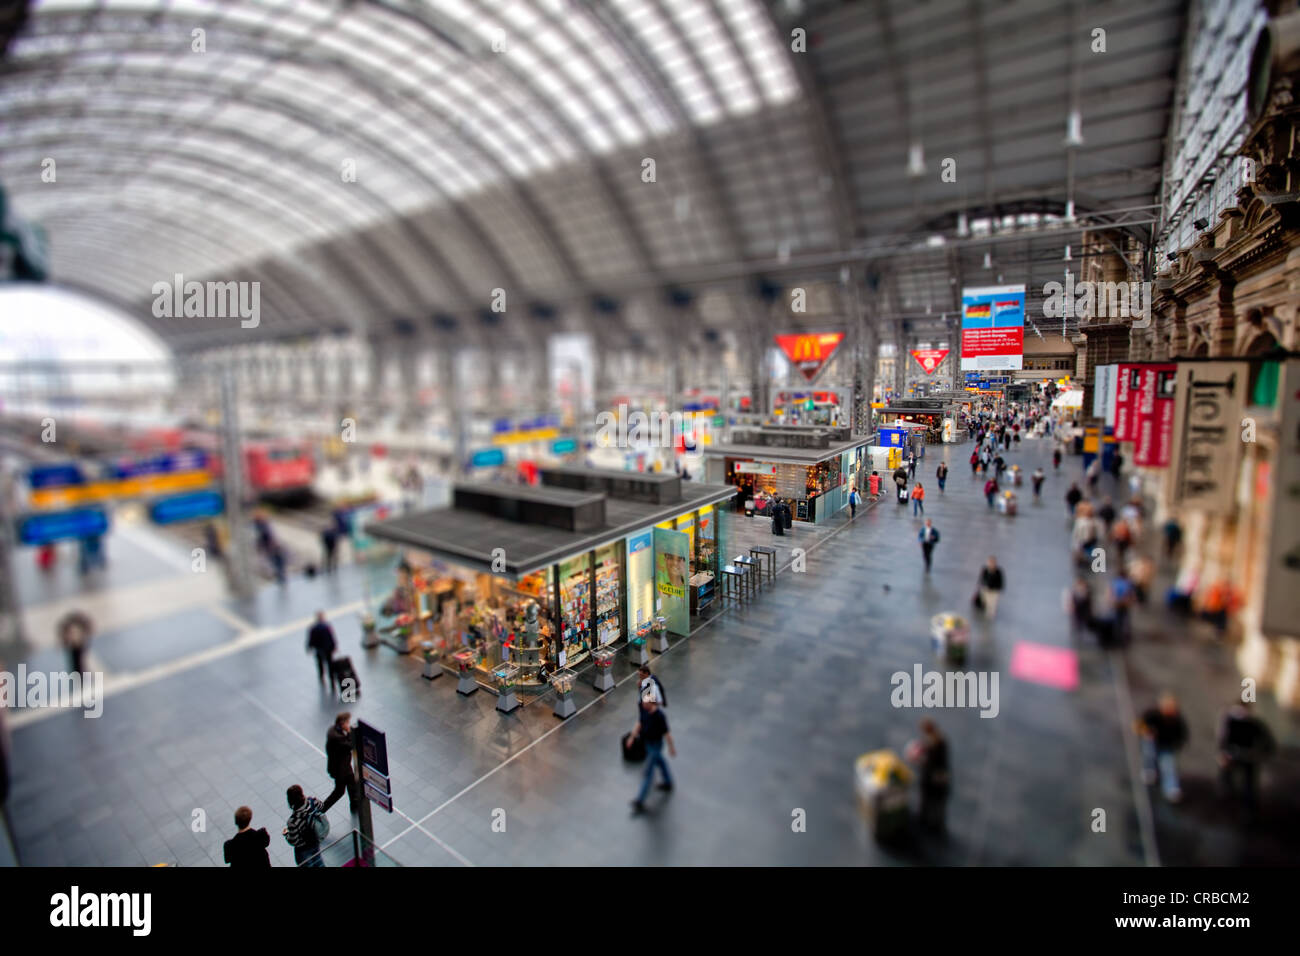 Frankfurt Central Railway Station, tilt-shift effect to give the impression of a miniature model due to reduced - Stock Image